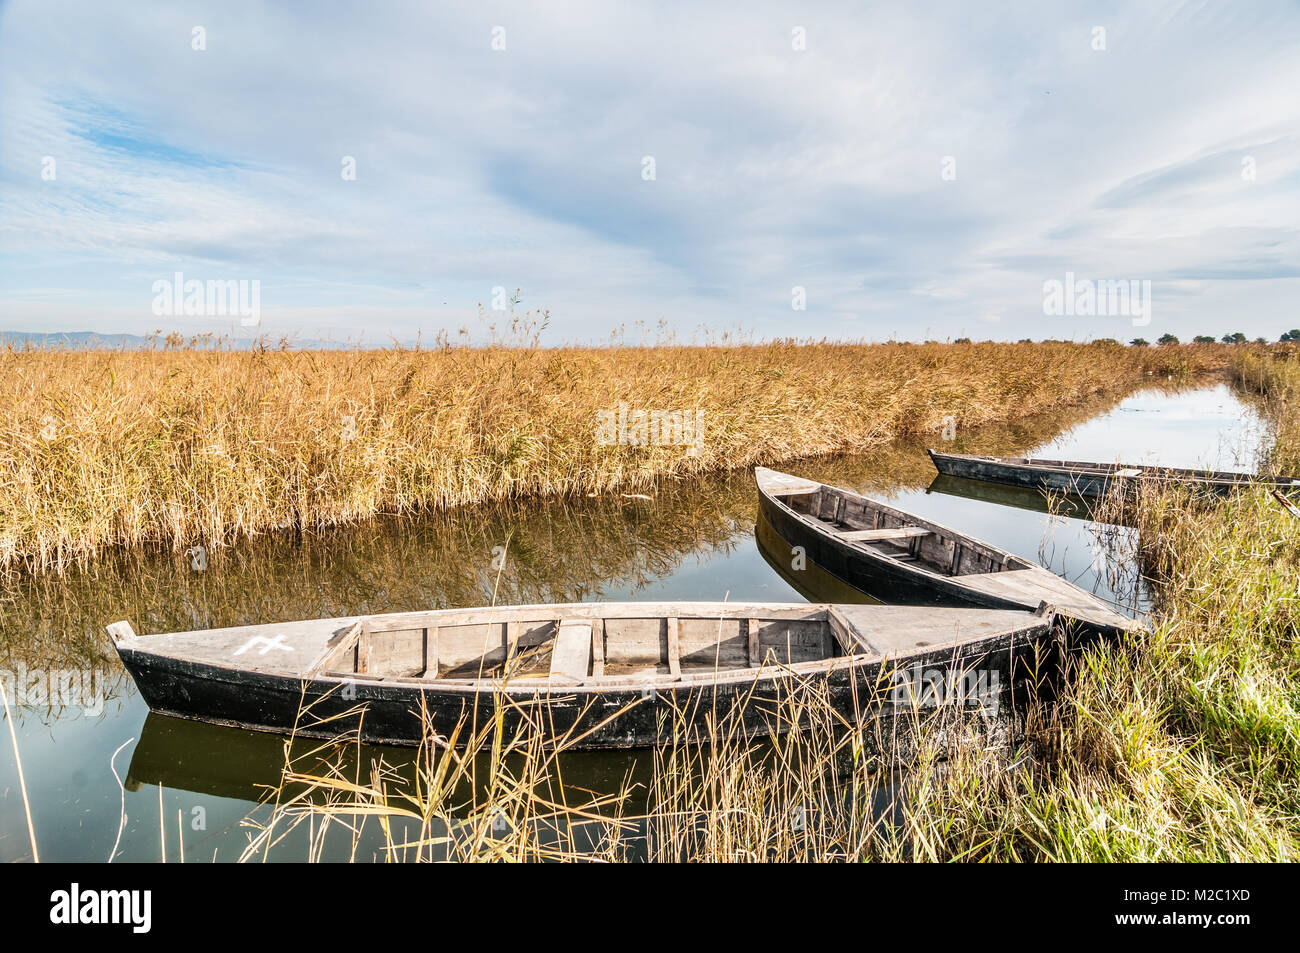 Canoes in a watering canal, Ebro Delta, Catalonia, Spain Stock Photo